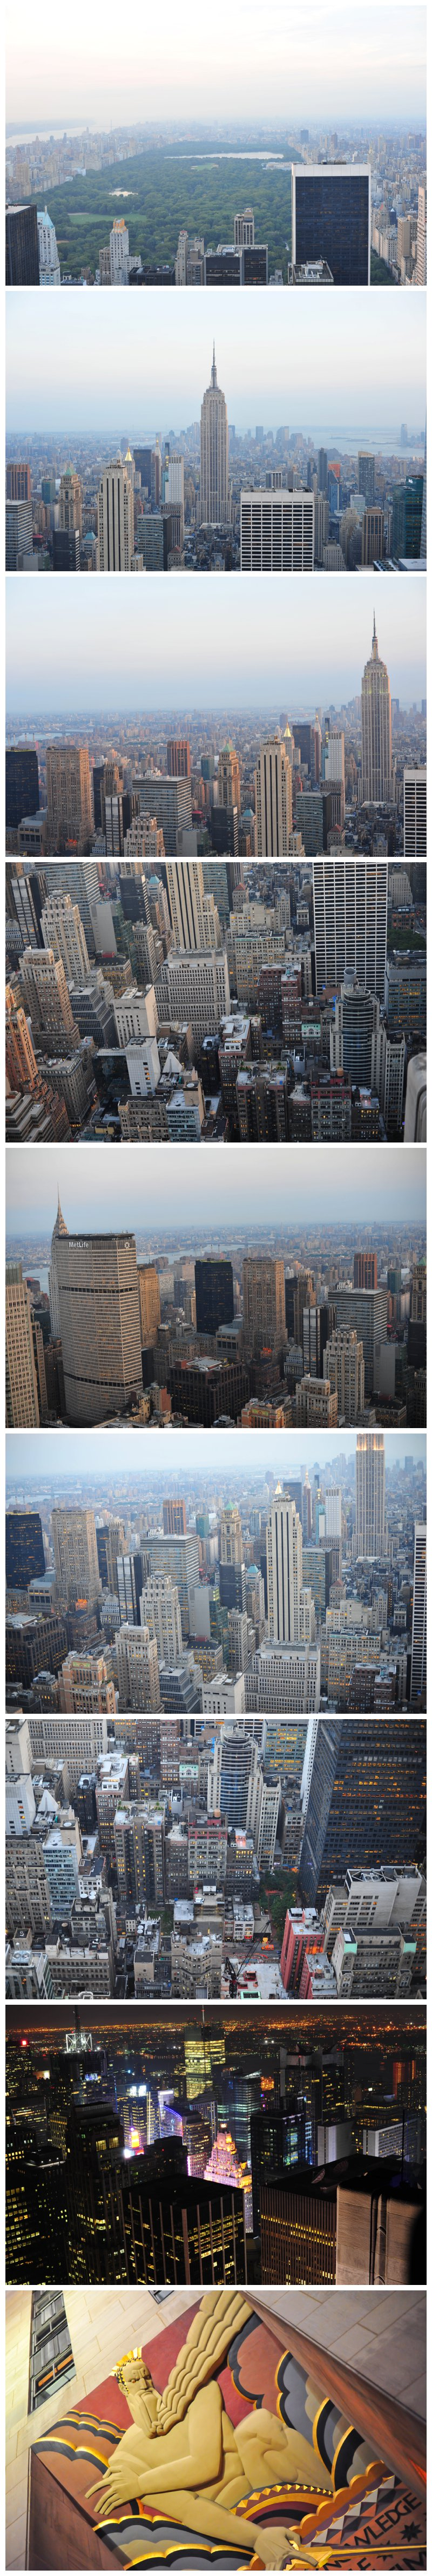 3-top-of-the-rock-nyc-picture-3